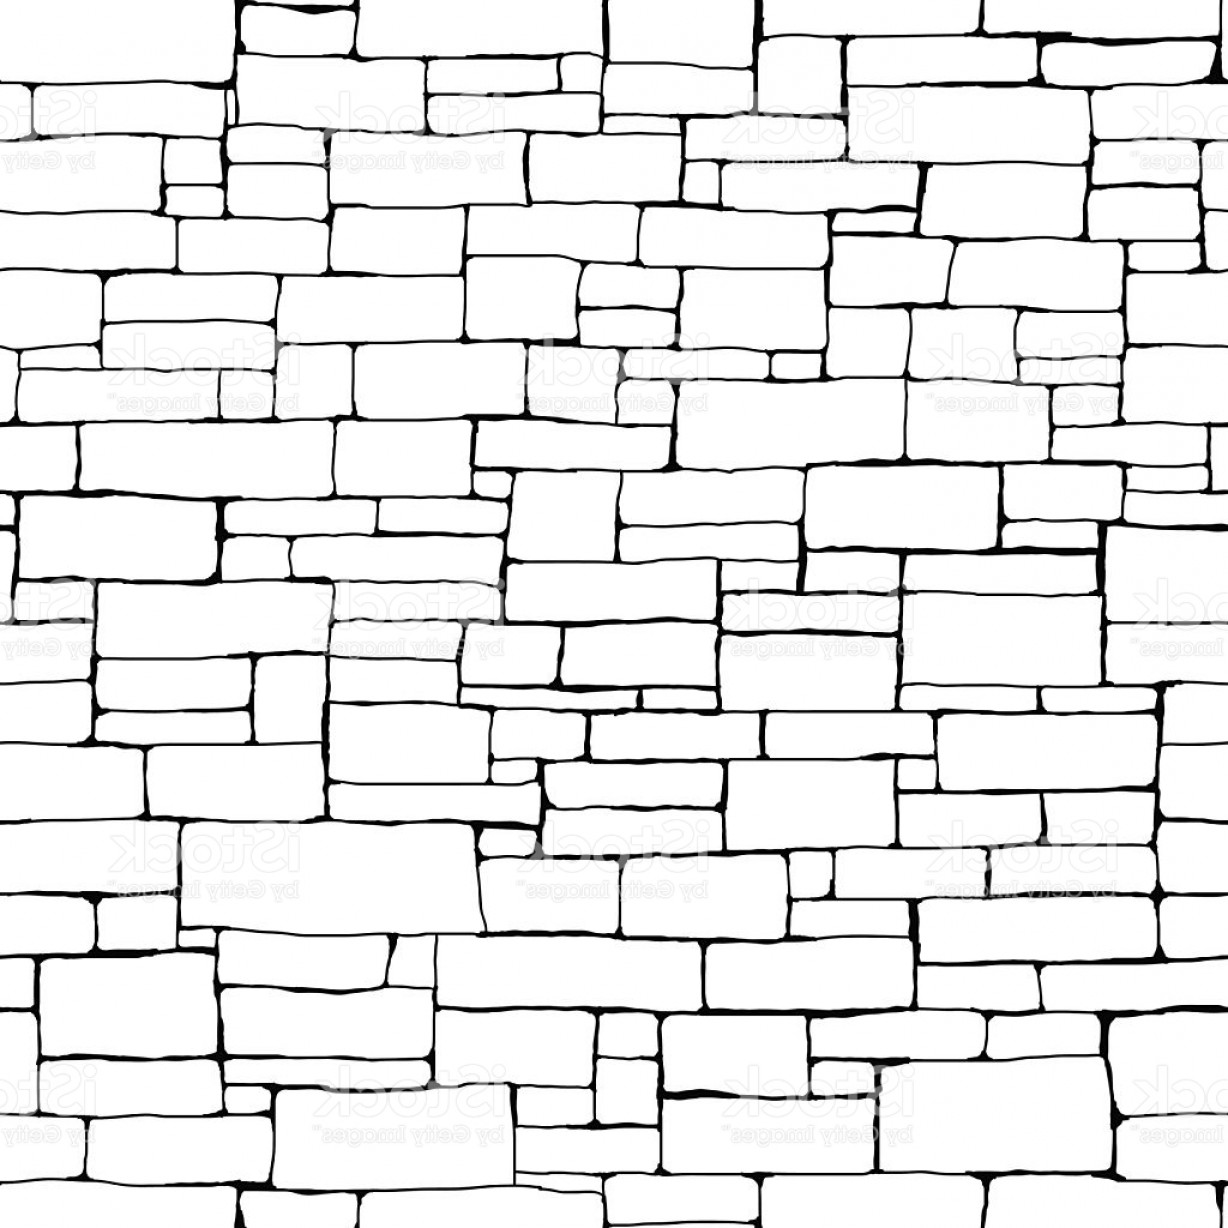 Wall Background Vector: Seamless Brick Wall Background Gm